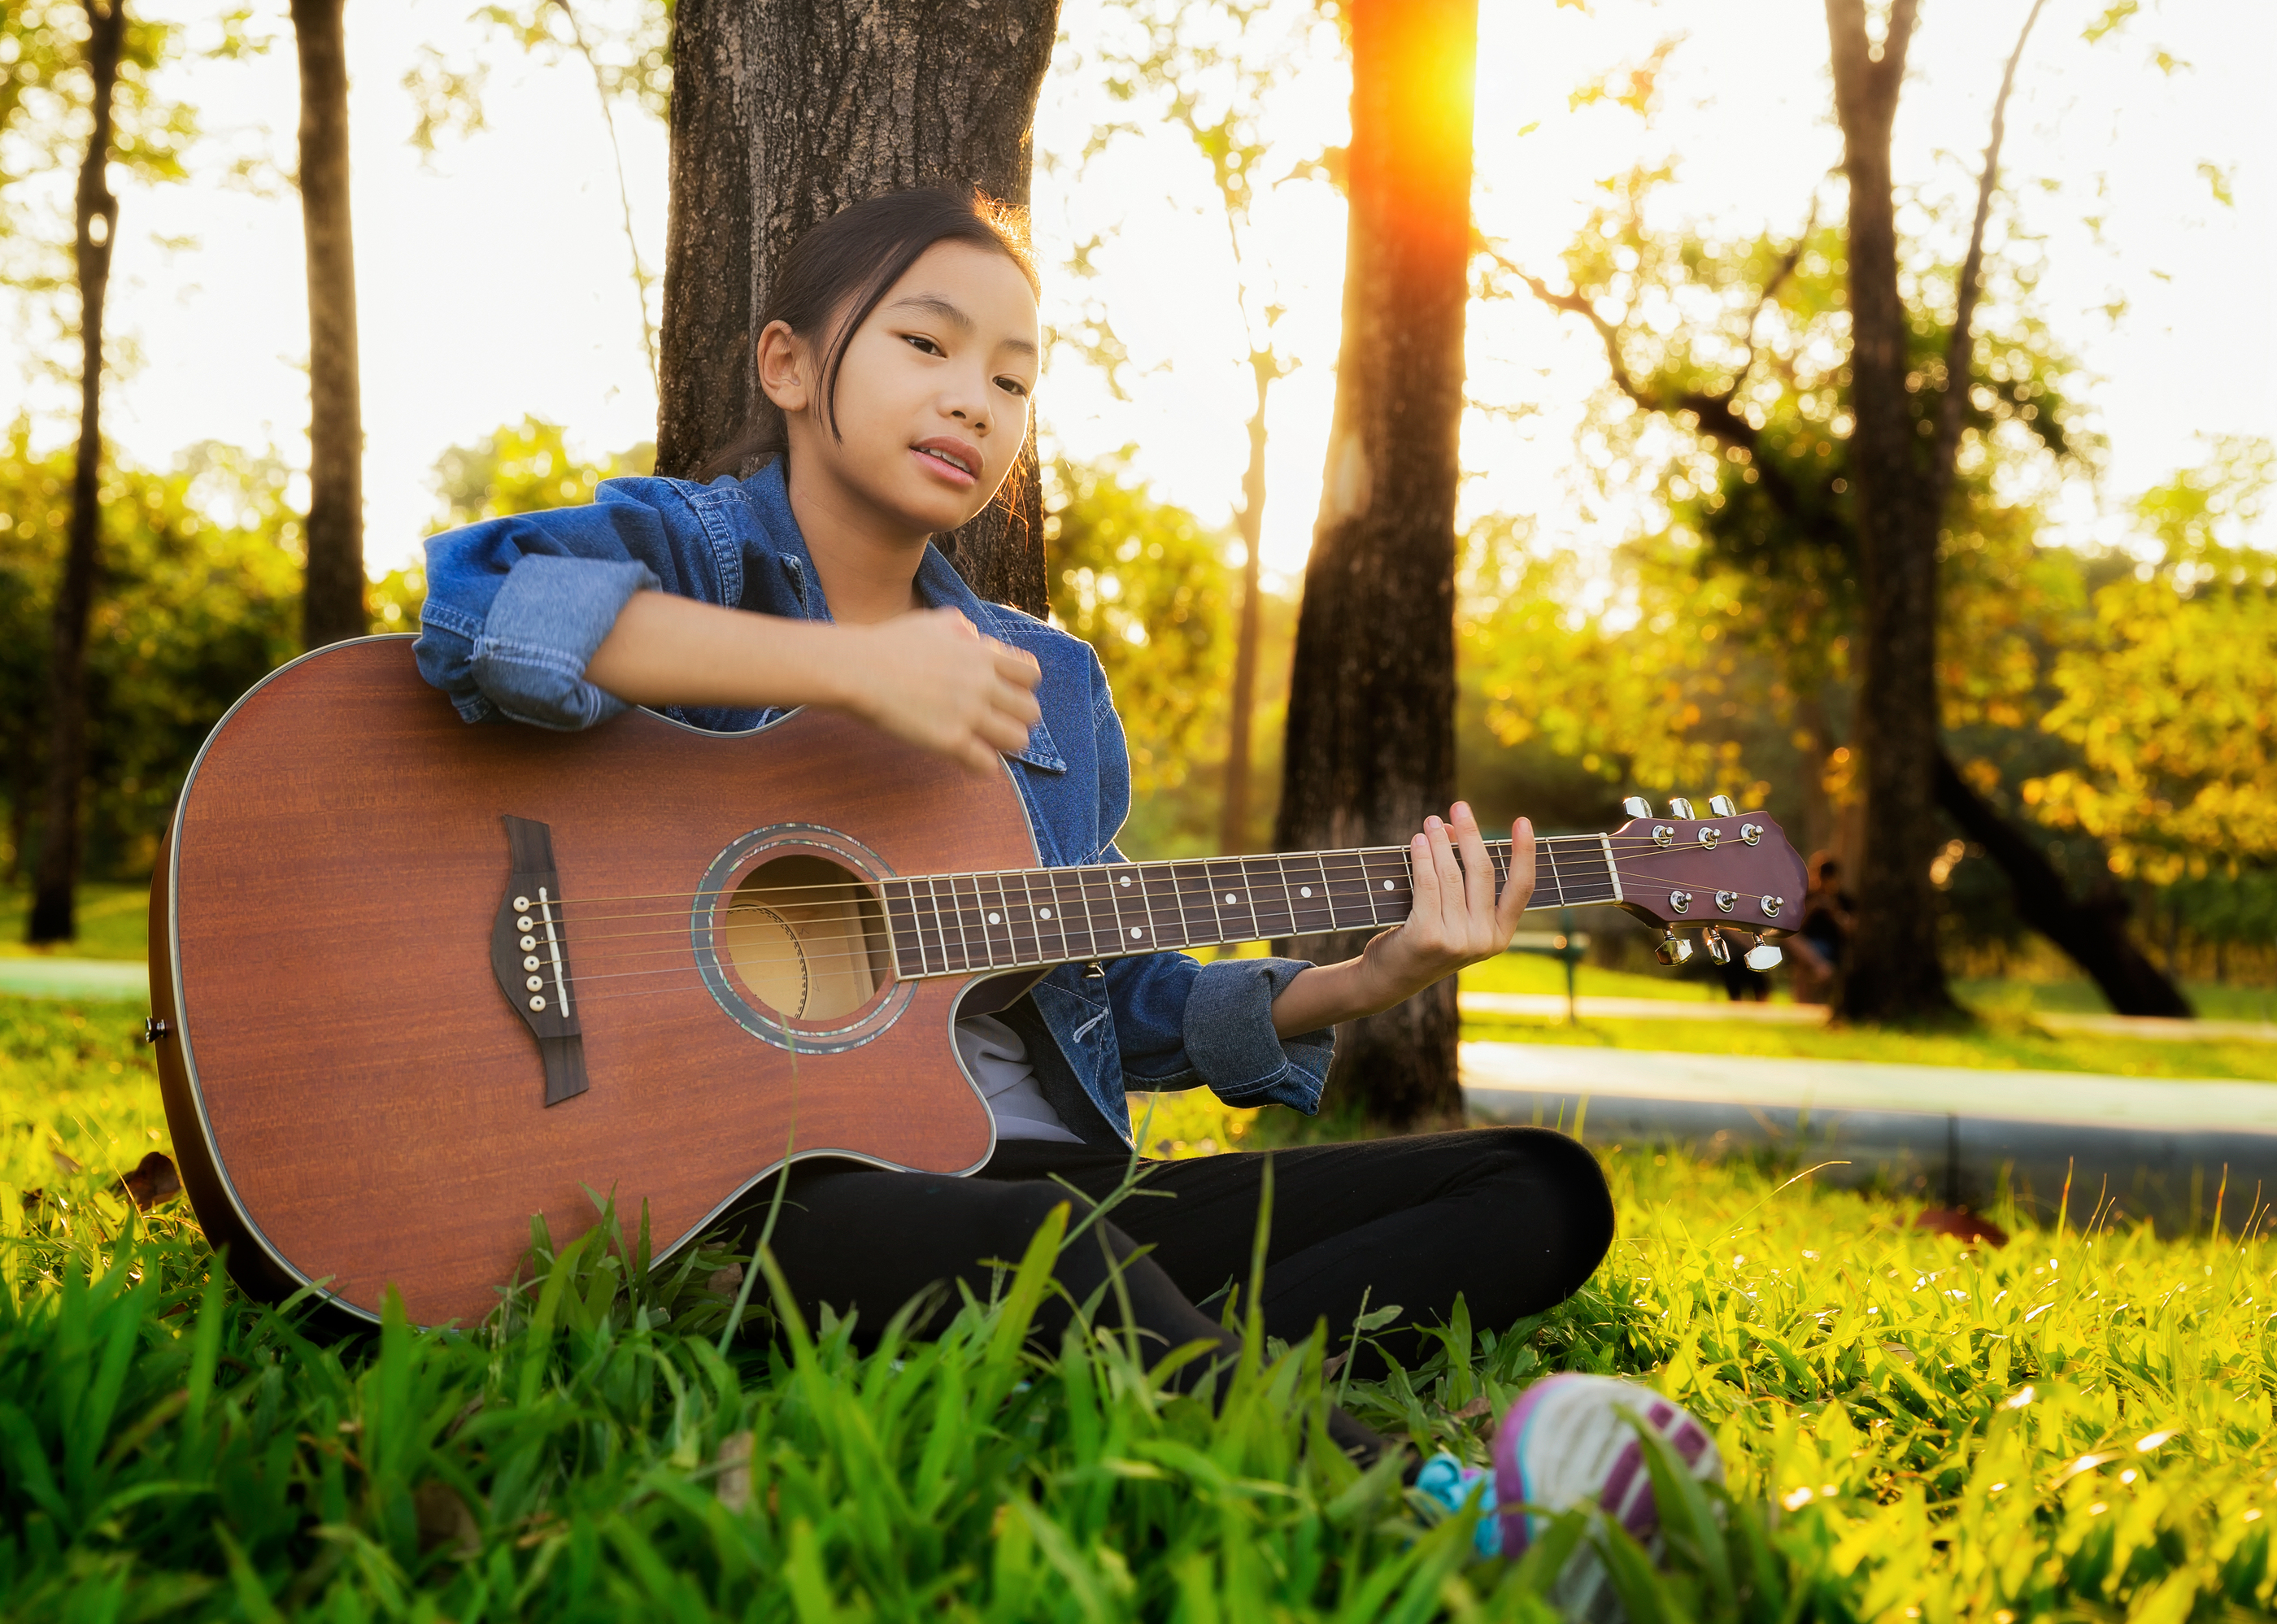 Tween girl playing guitar